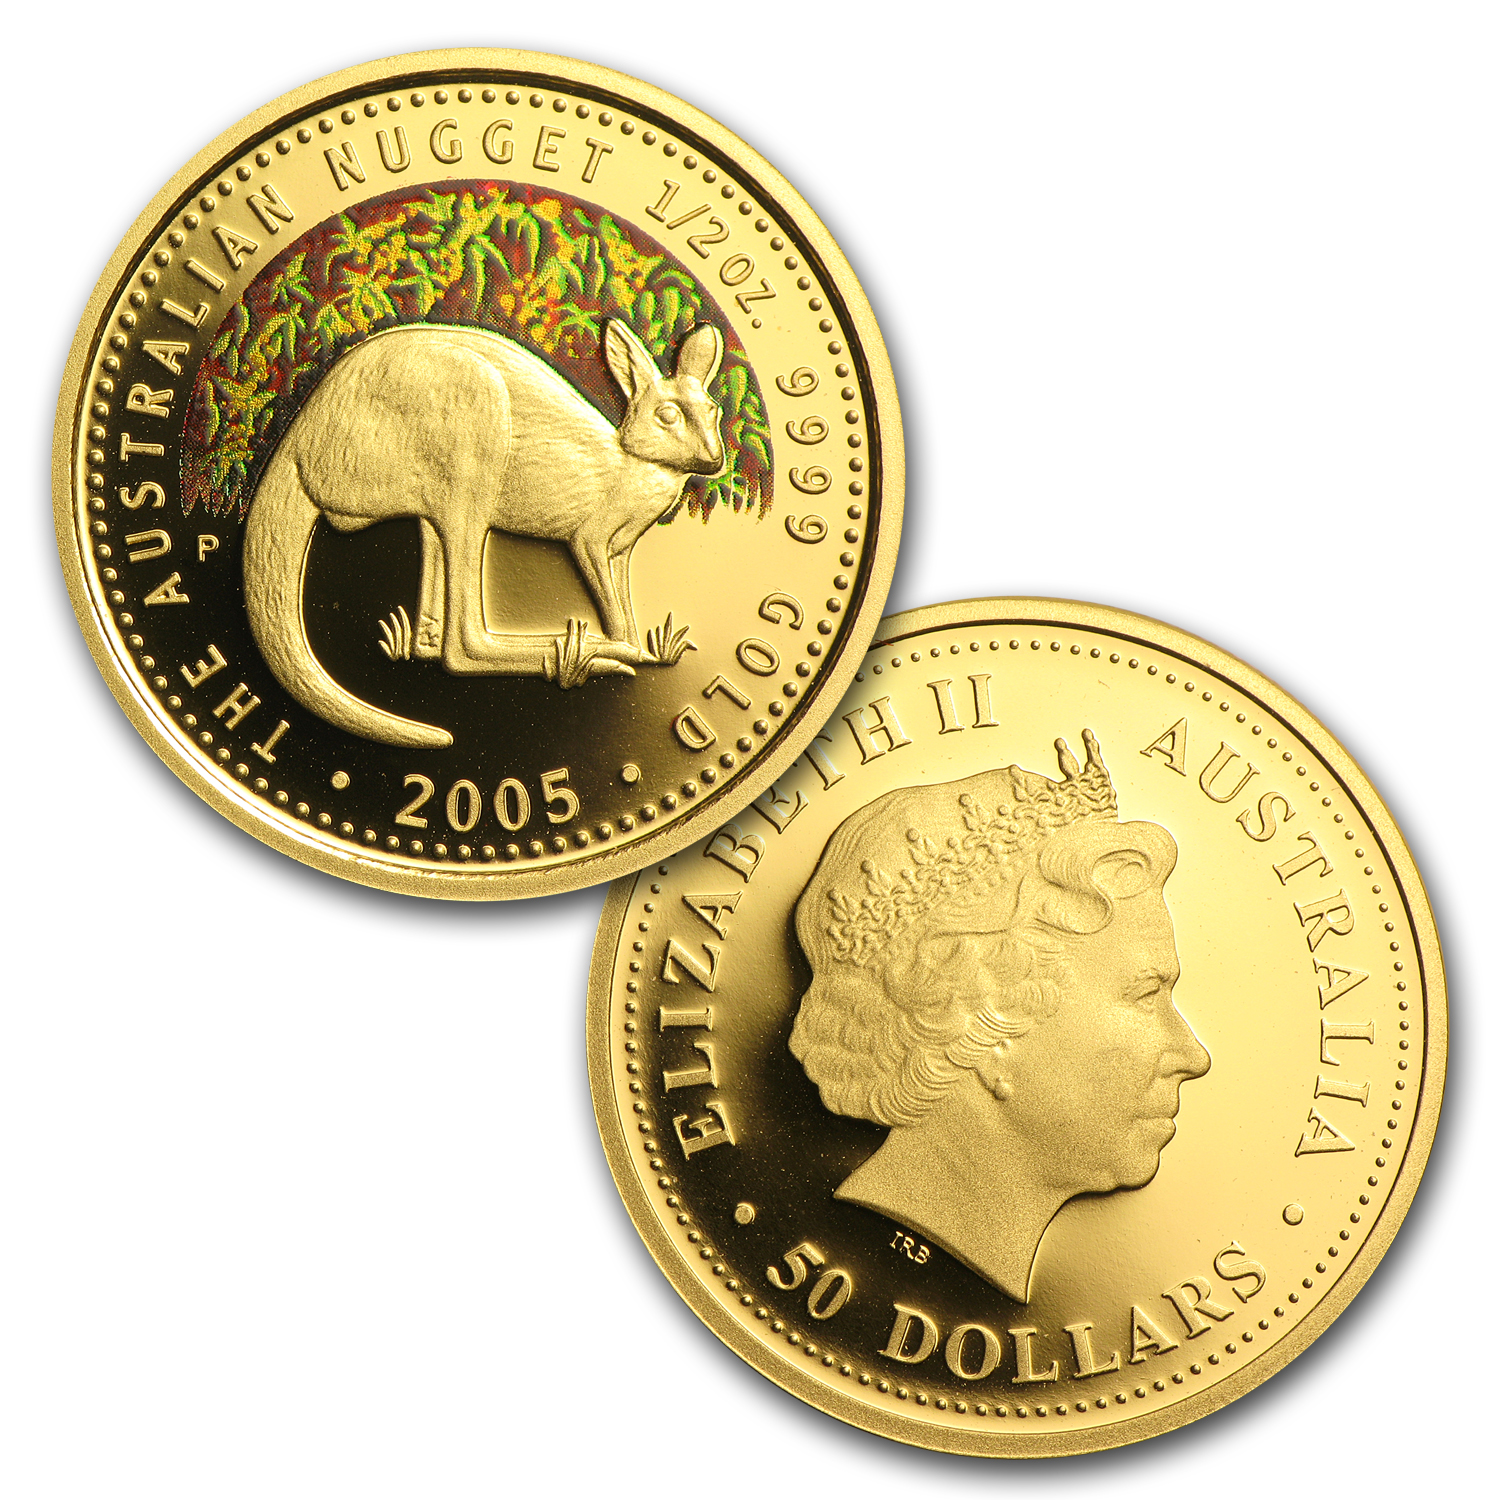 2005 5 coin Australian Proof Gold Nugget Set